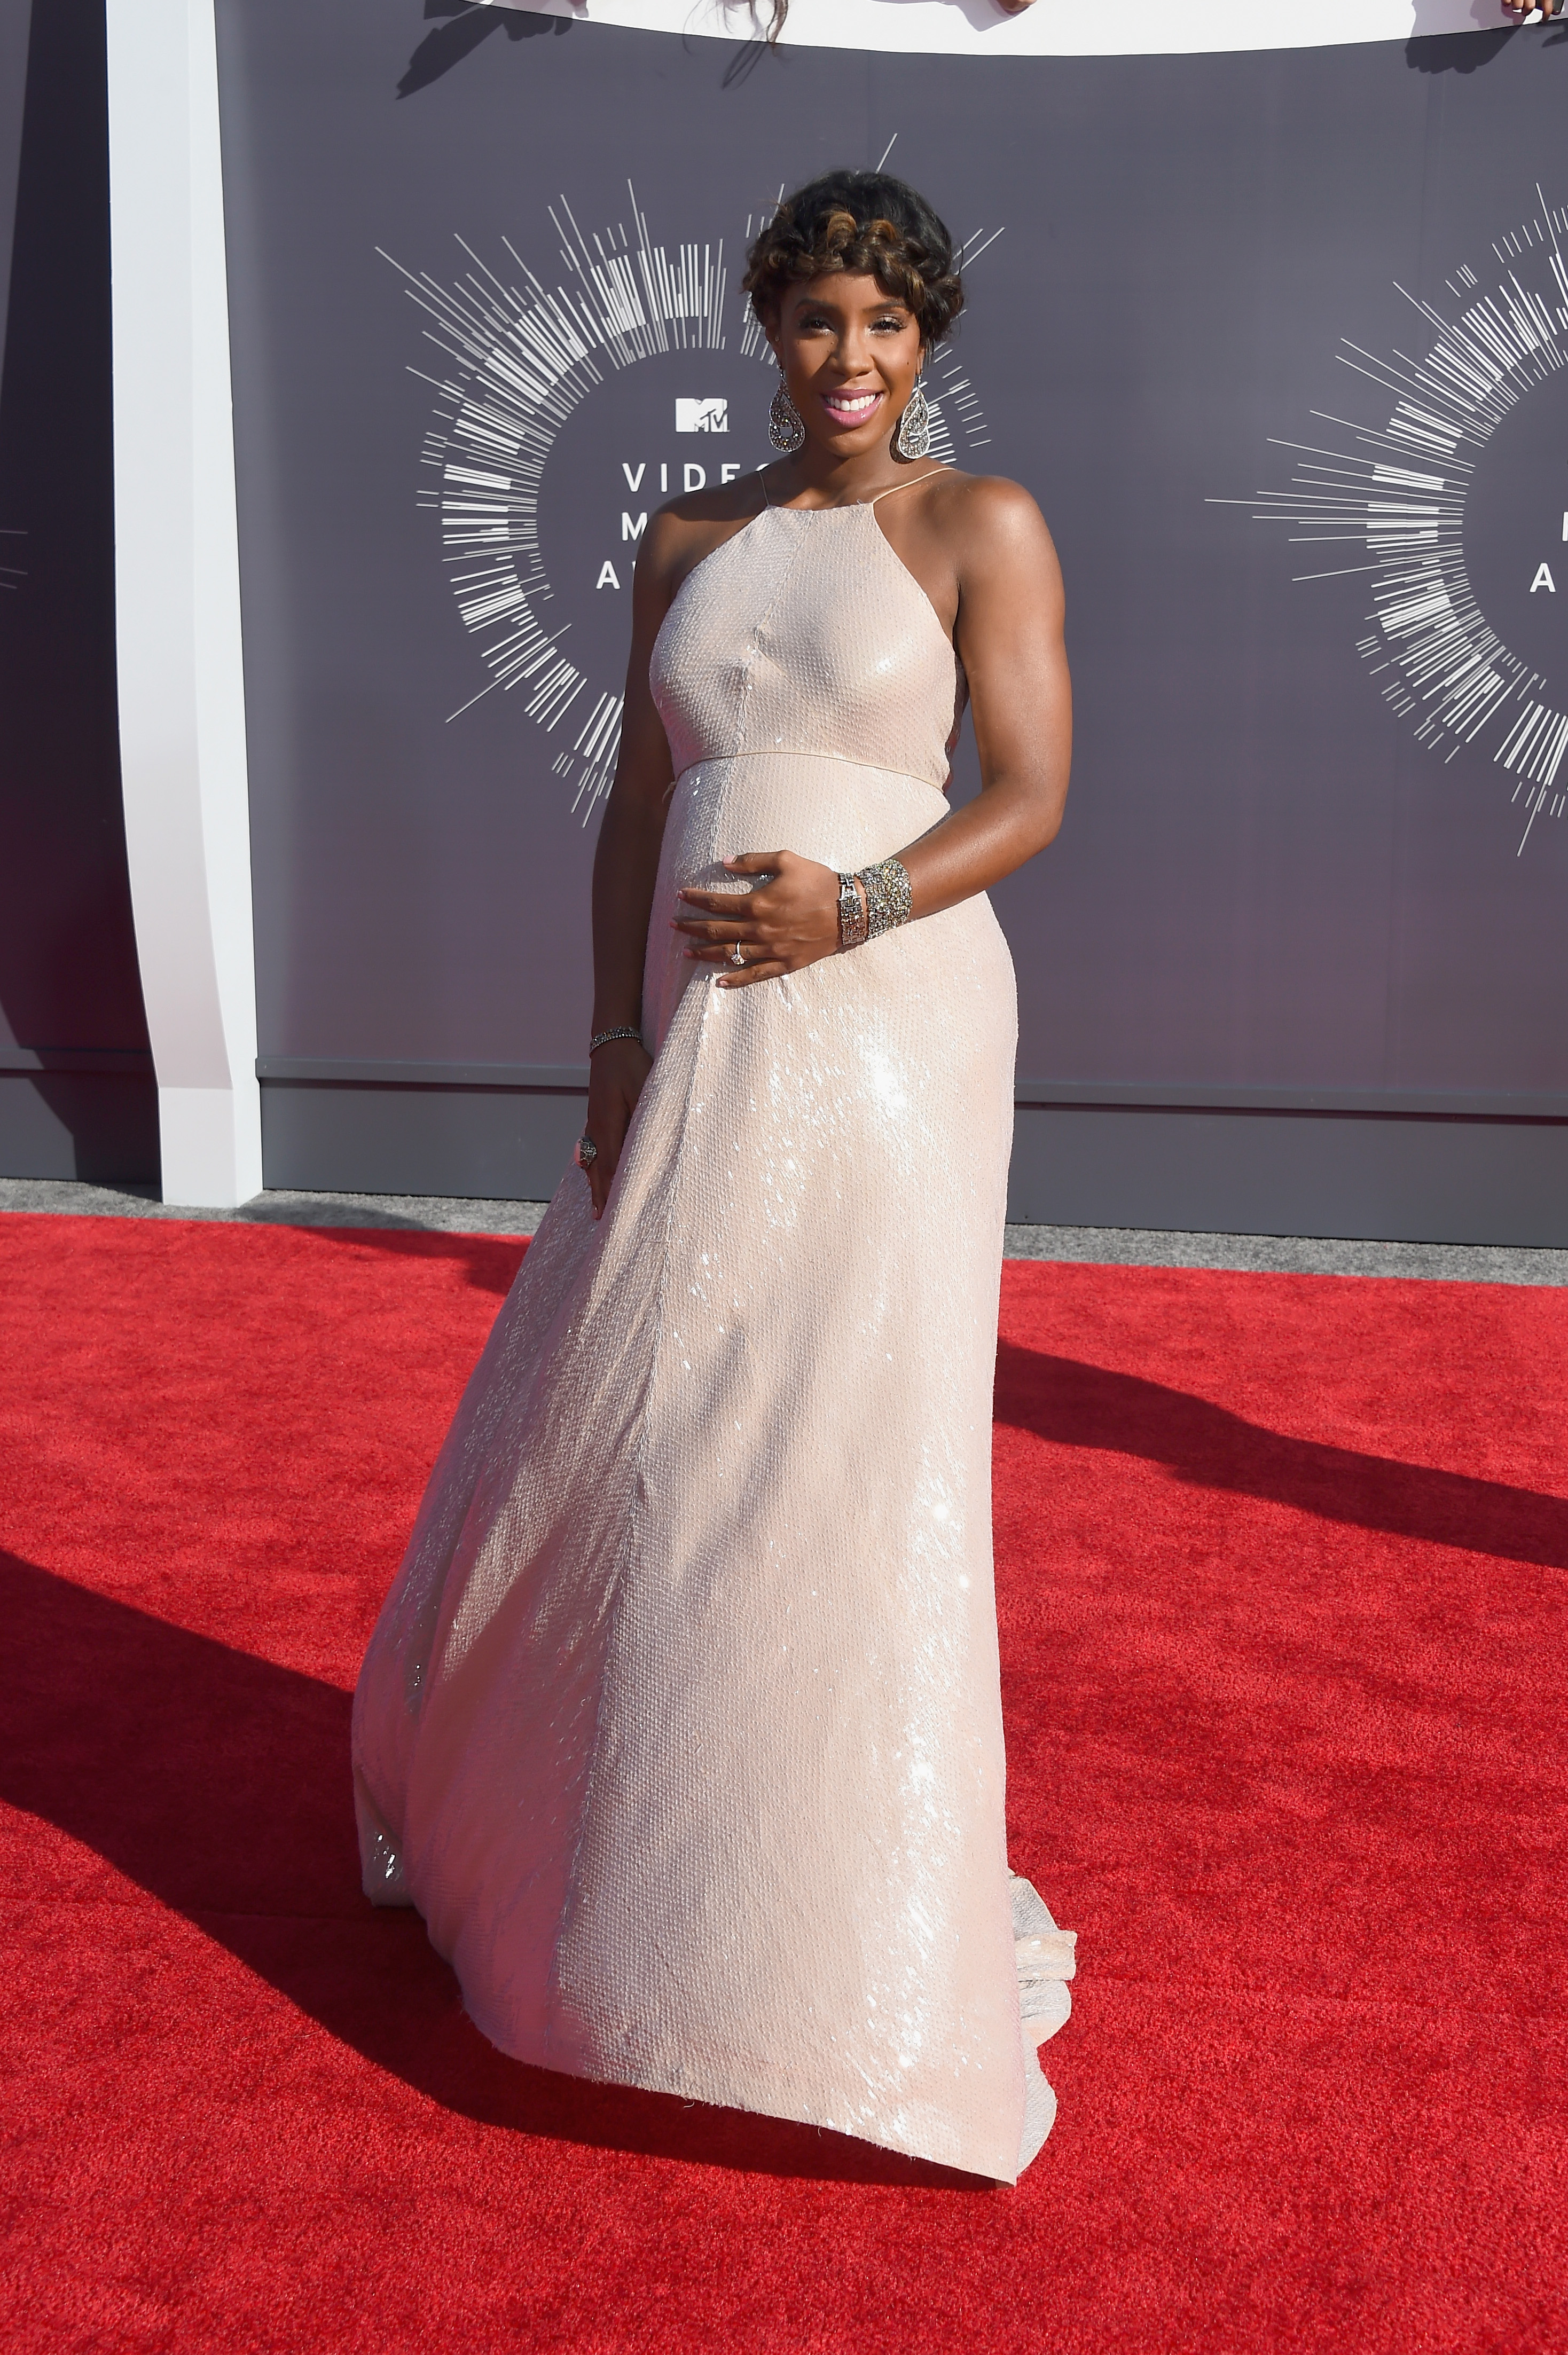 Kelly Rowland attends the 2014 MTV Video Music Awards at The Forum on August 24, 2014 in Inglewood, California.